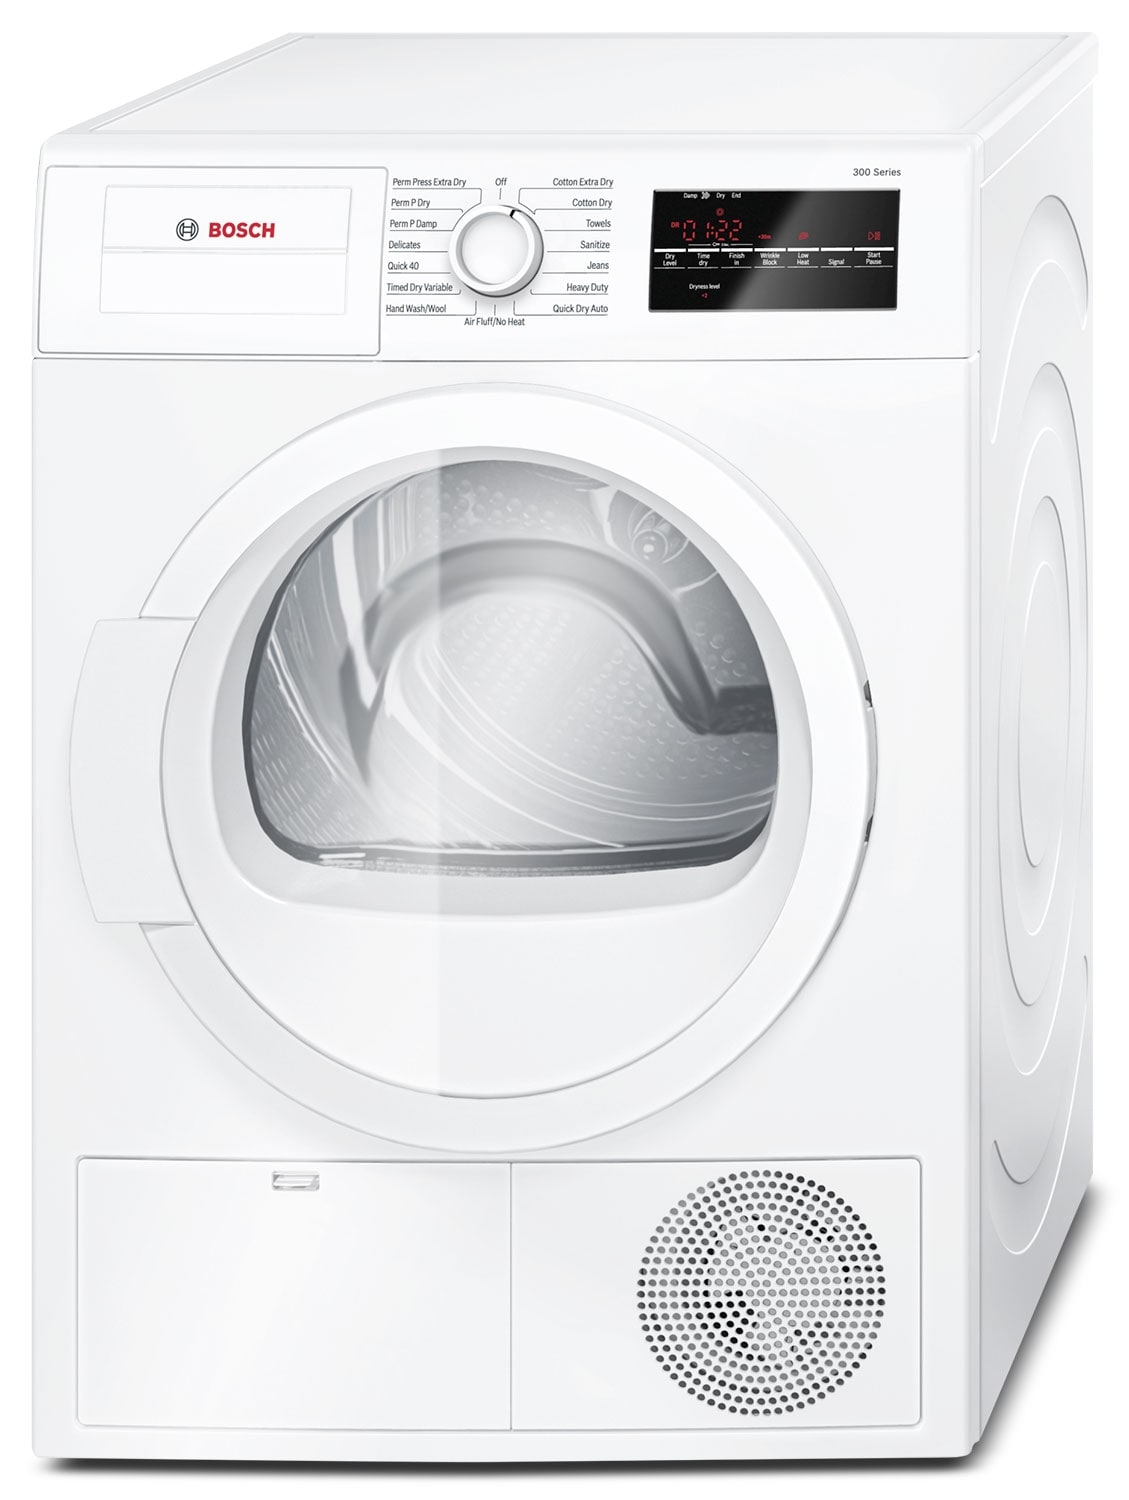 Washers and Dryers - Bosch White Electric Dryer (4 Cu. Ft.) - WTG86400UC